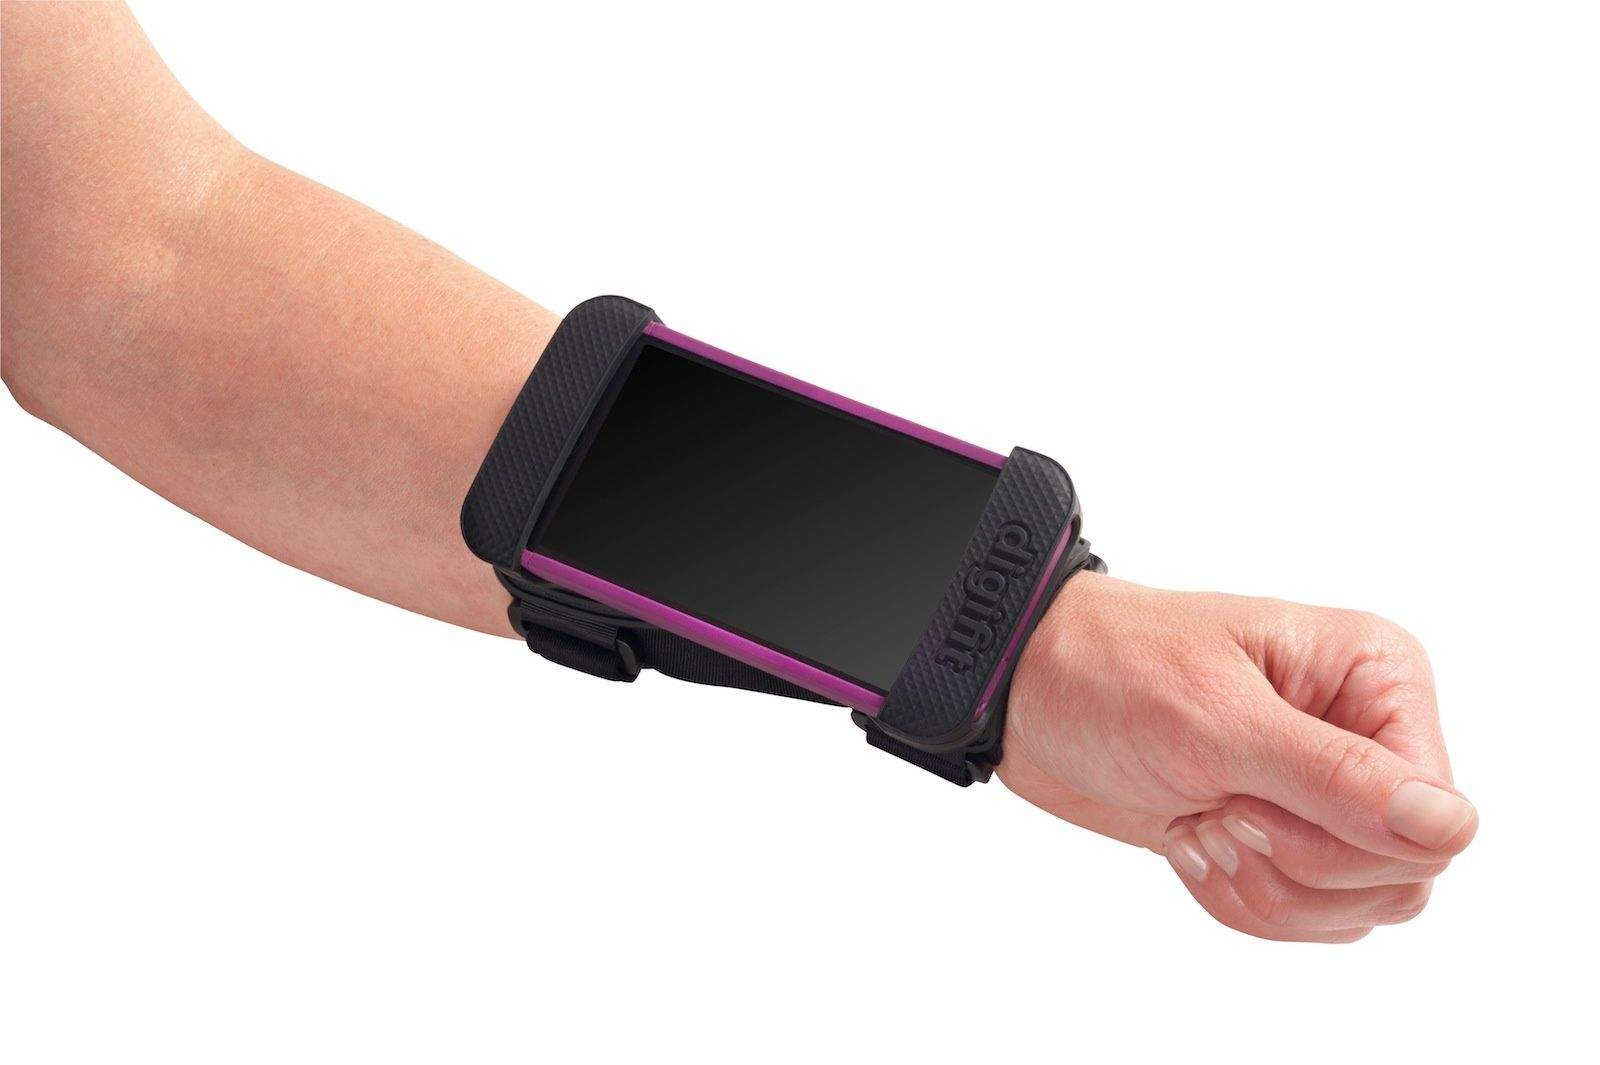 iphone wrist strap the saddle lets you mount an iphone onto your wrist cult 12506